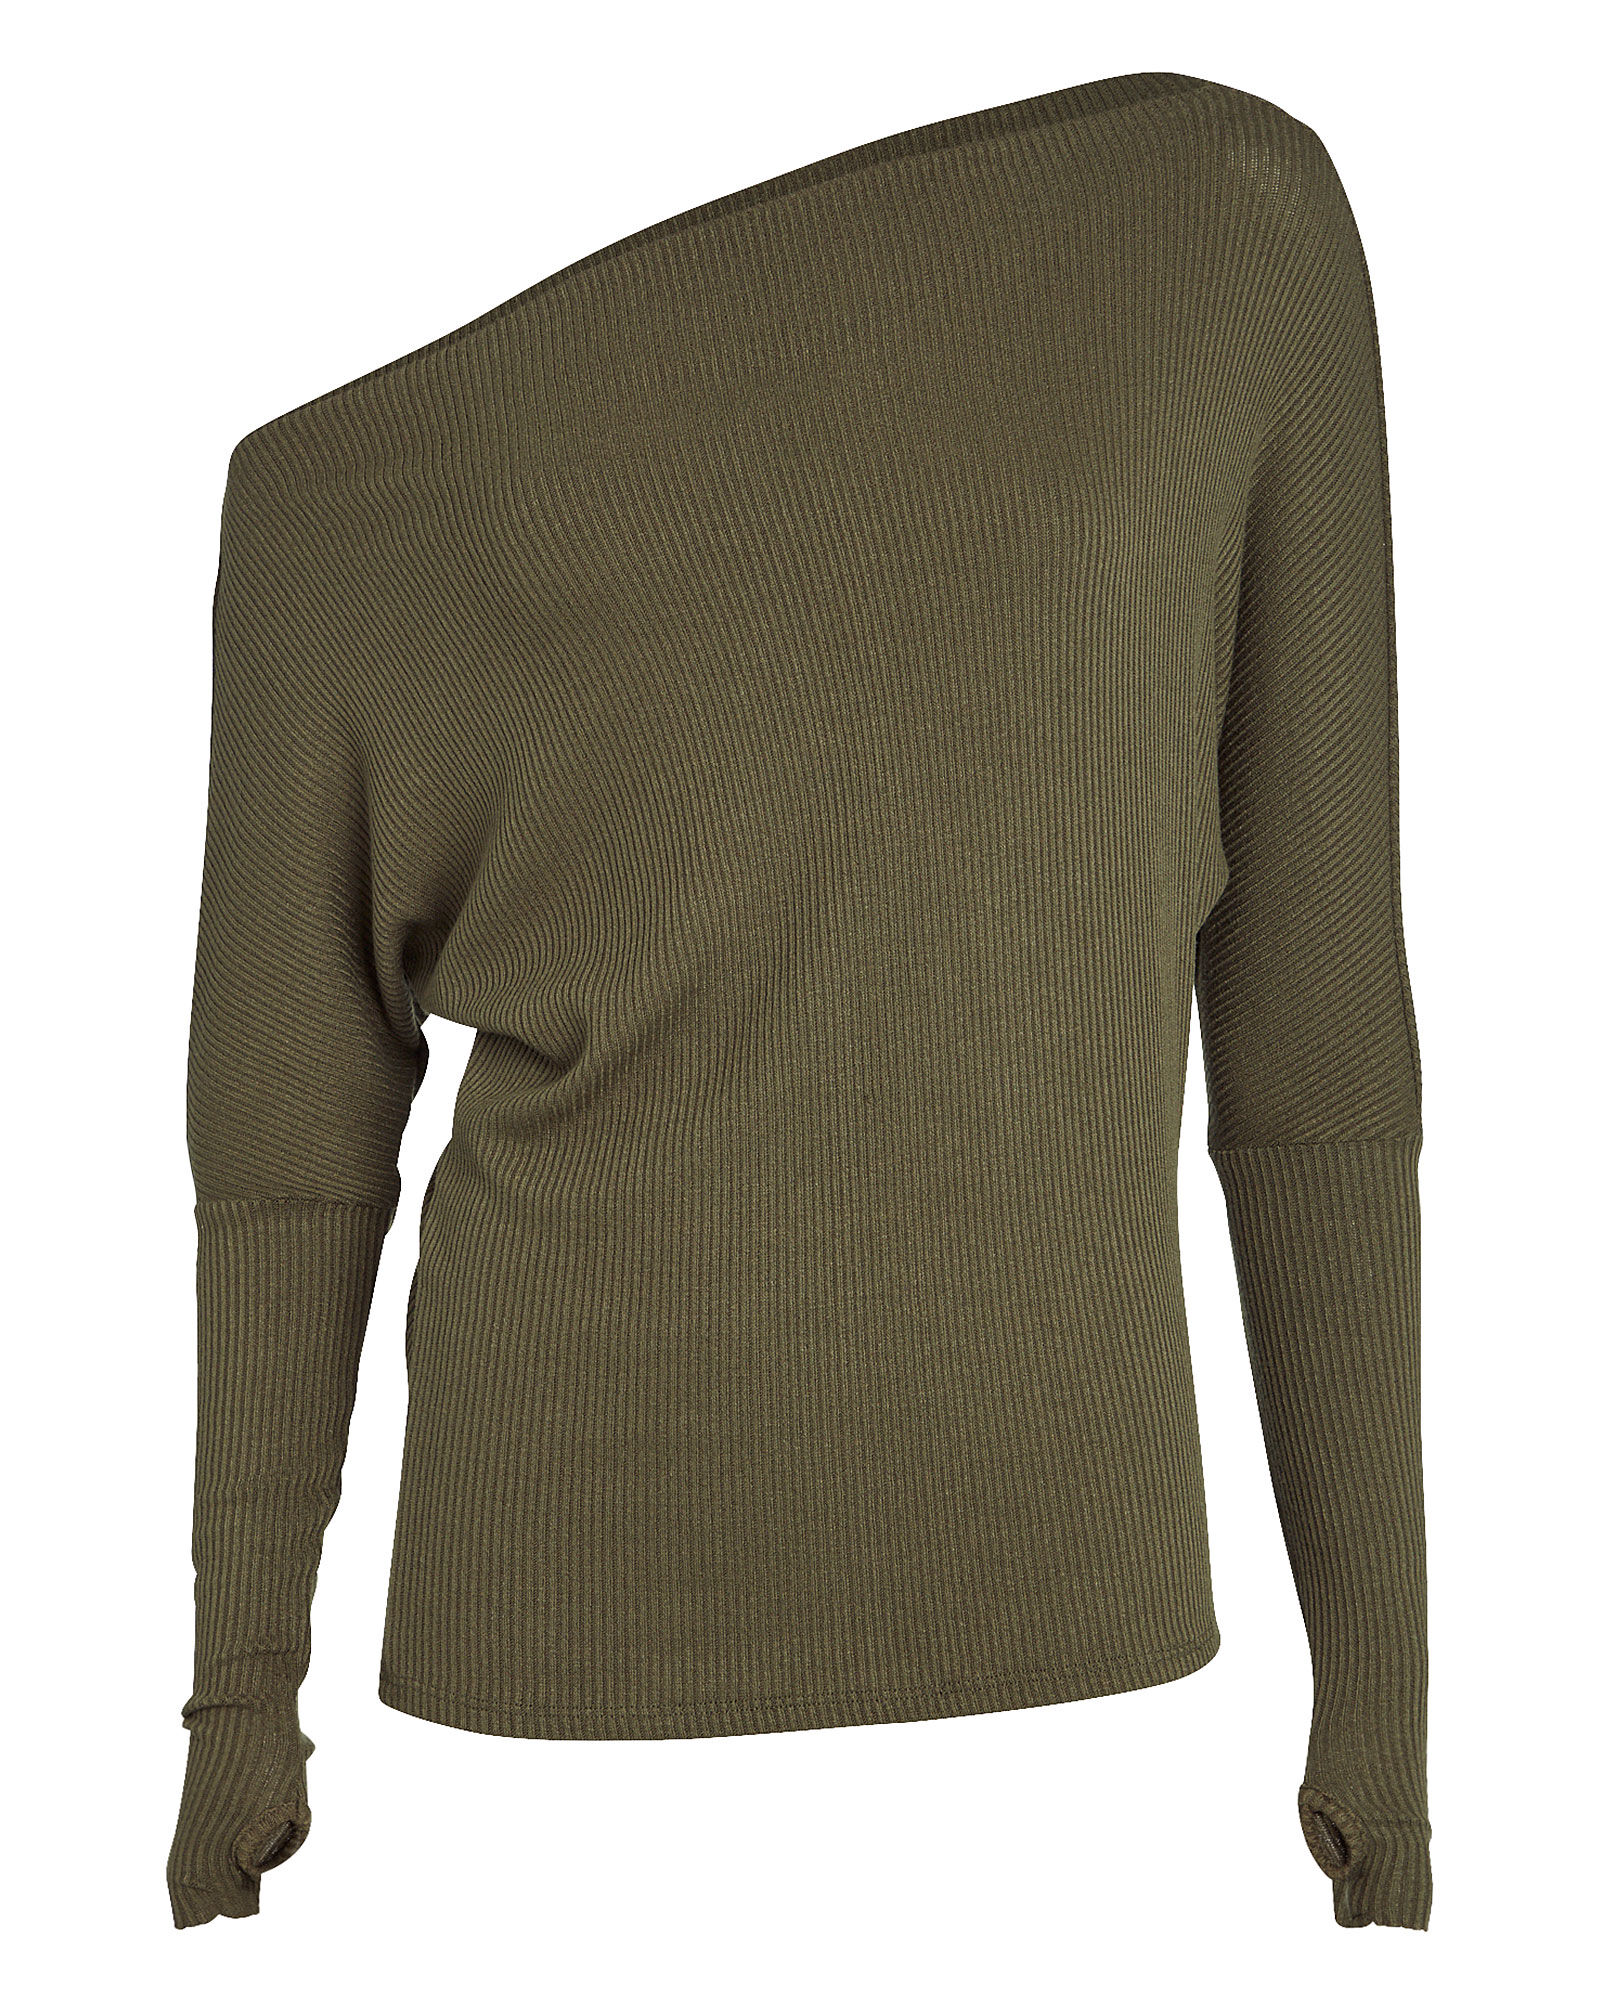 Slouch Rib Knit Top, OLIVE/ARMY, hi-res